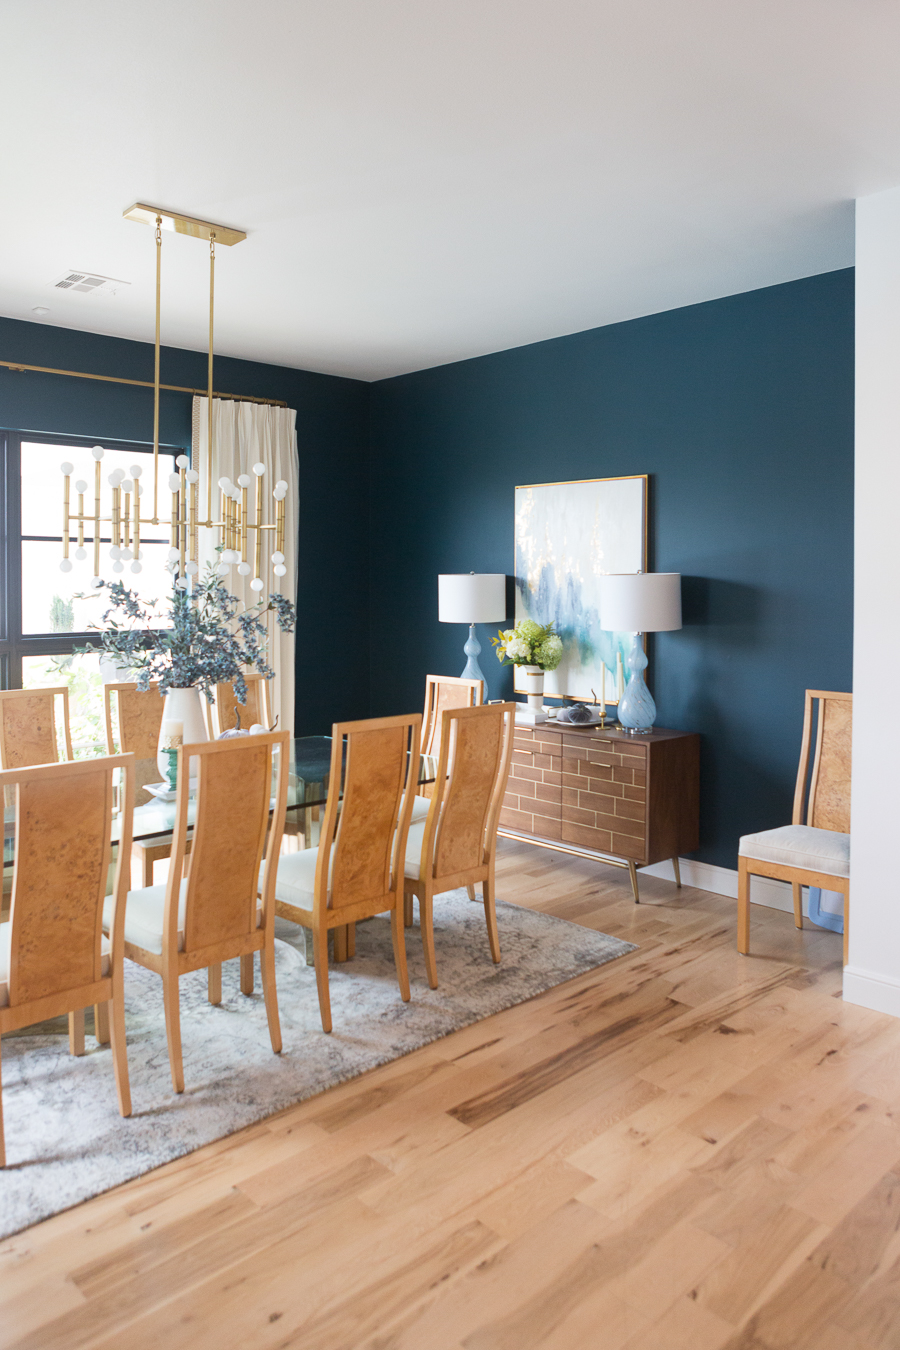 CC and Mike Guide to Buying the Perfect Area Rug jonathan adler sputnik light fixture dark green walls burl wood dining chairs